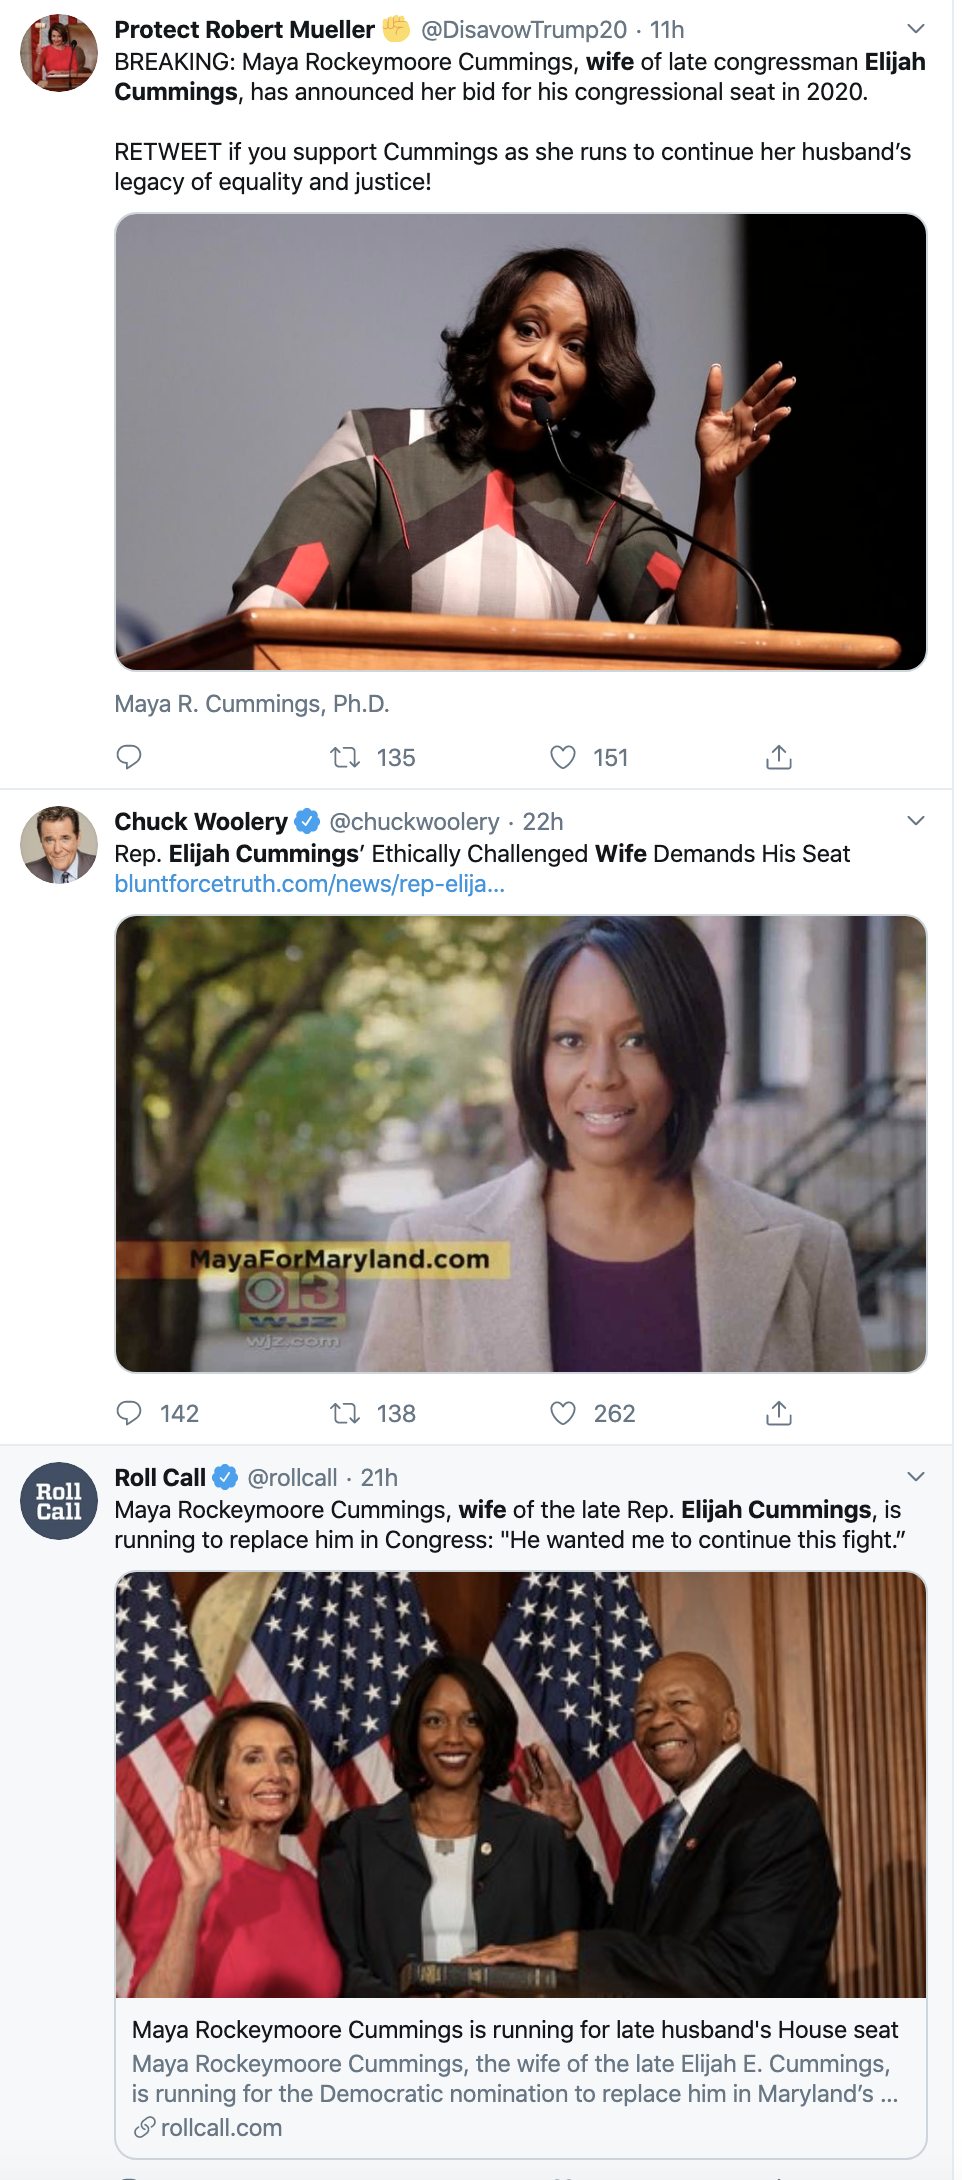 Screen-Shot-2019-11-13-at-8.57.39-AM Elijah Cummings' Widow Makes Brave Political Announcement Black Lives Matter Civil Rights Domestic Policy Election 2016 Election 2020 Featured Feminism Foreign Policy Humanitarian National Security Politics Poverty Religion Top Stories Women's Rights